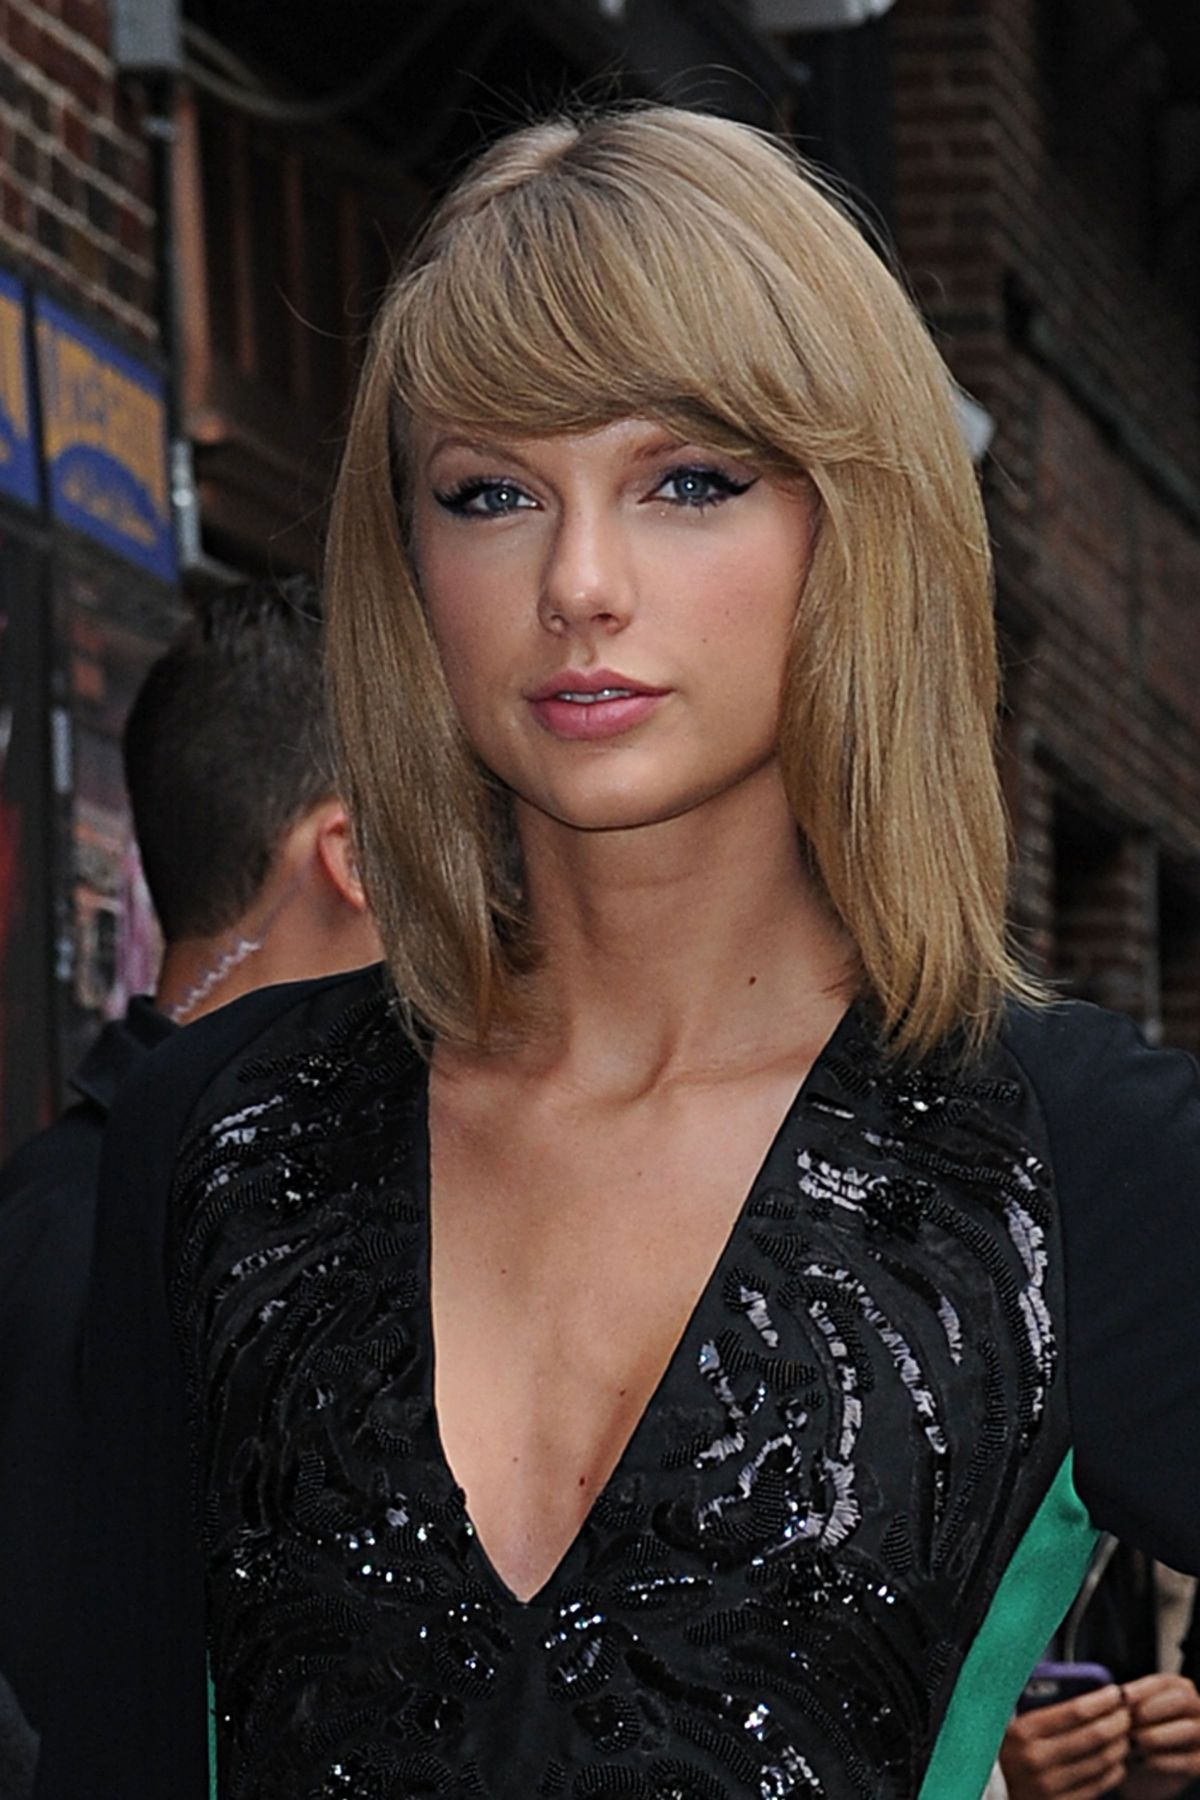 Taylor Swift At The David Letterman Show In New York City